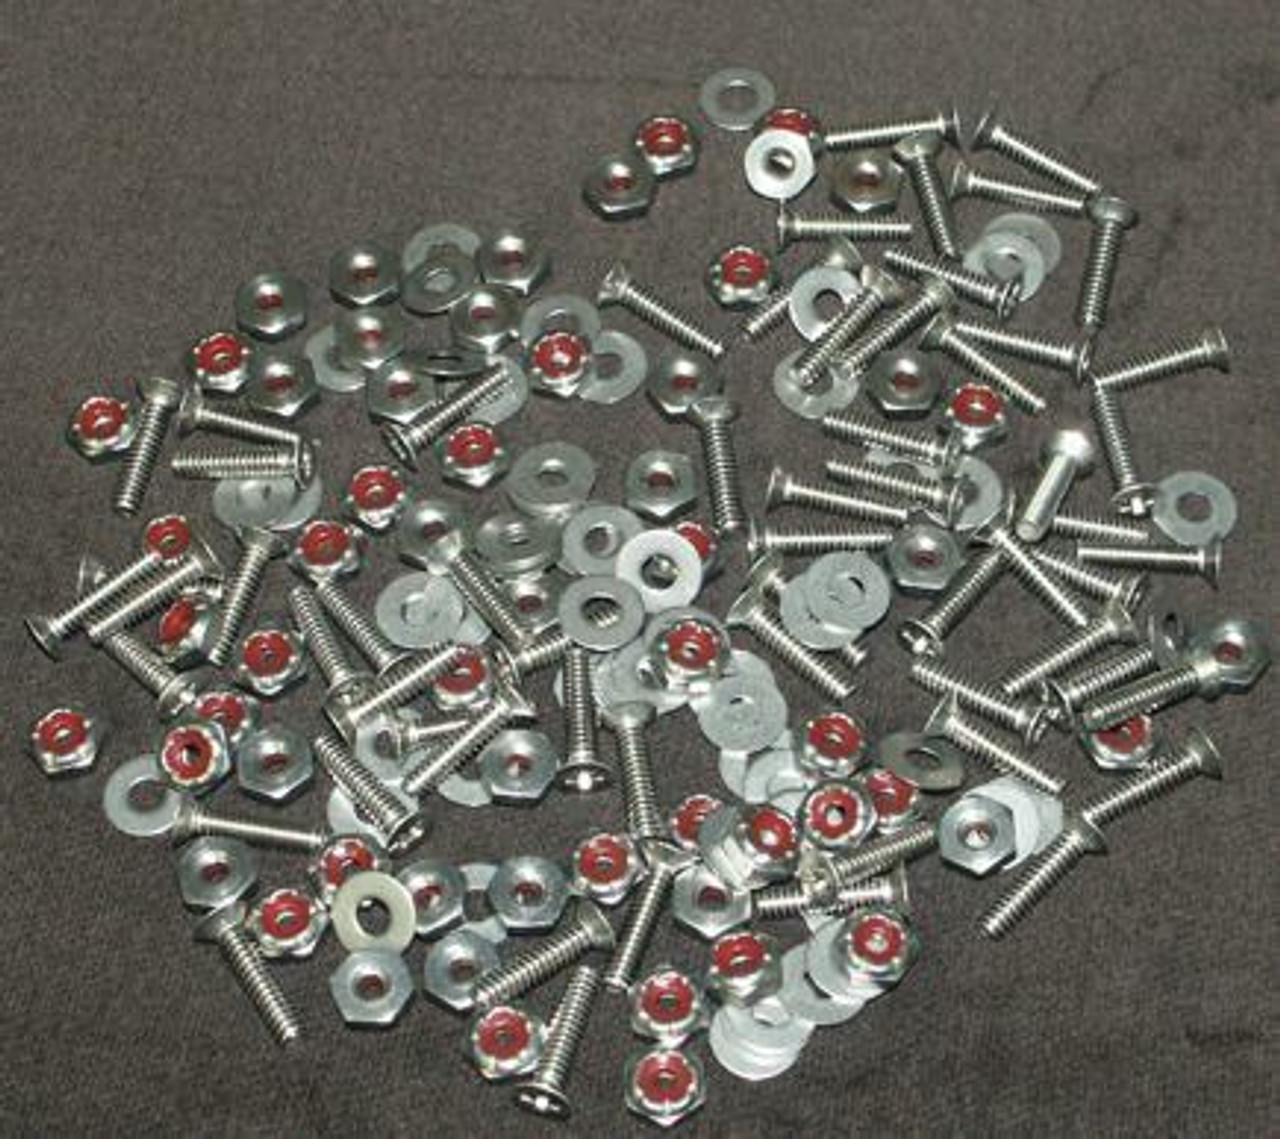 ROUND HEAD - 75pc Windshield SS Screw Kit (Not Pictured)